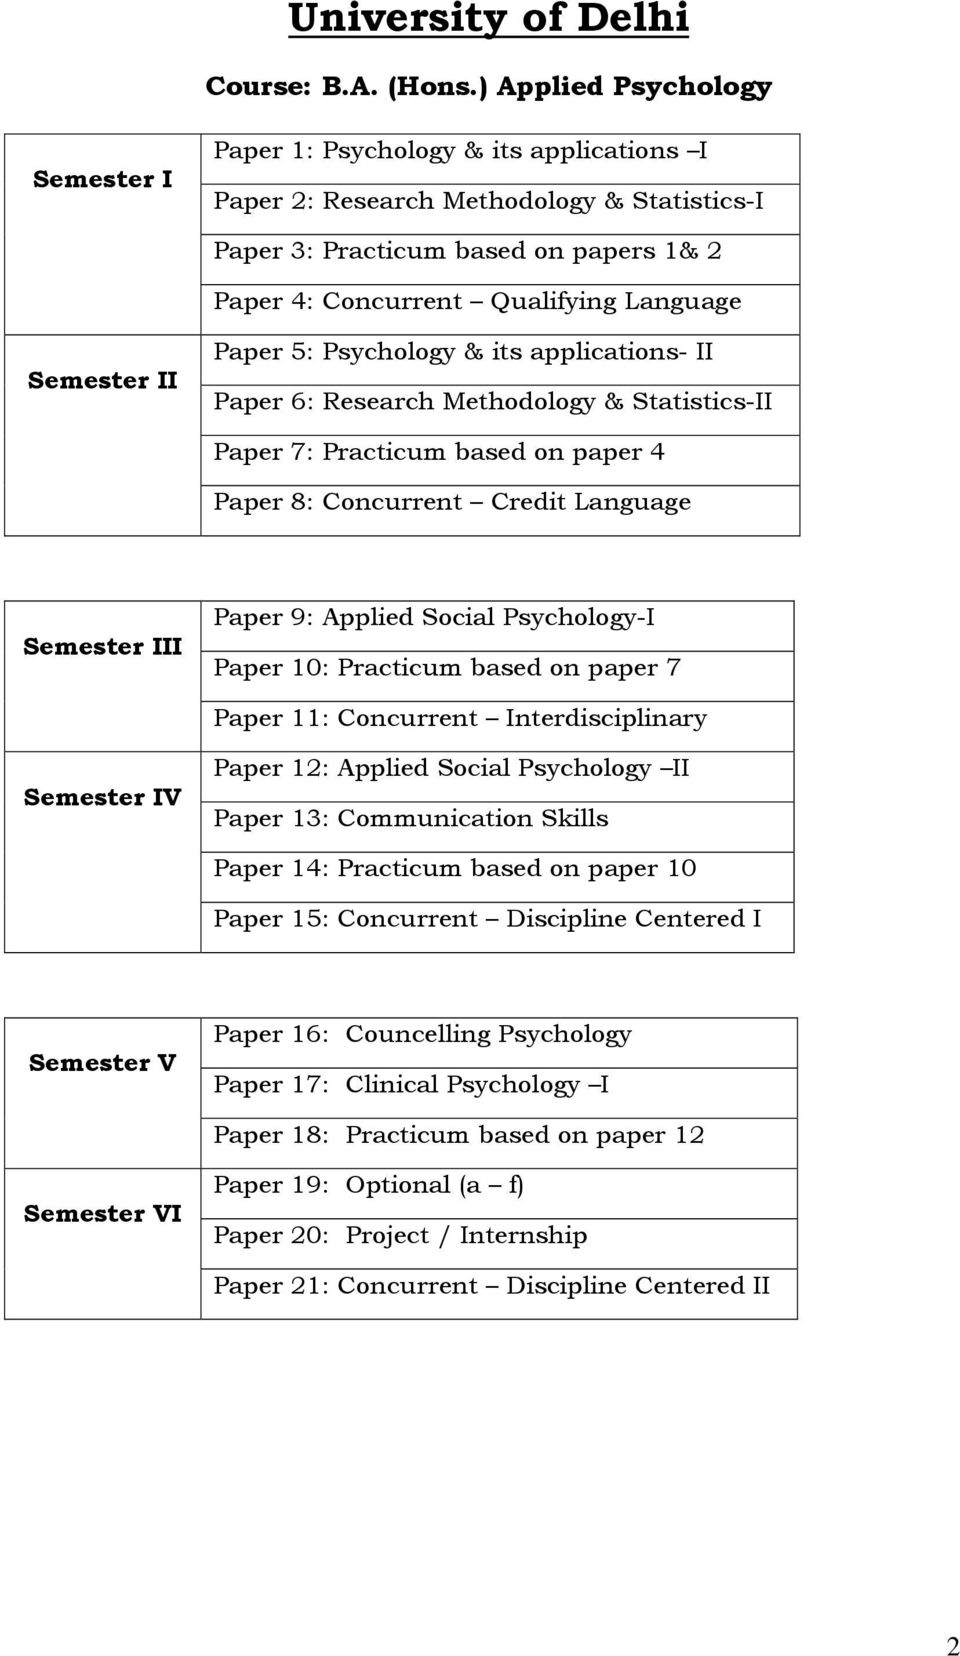 Semester II Paper 5: Psychology & its applications- II Paper 6: Research Methodology & Statistics-II Paper 7: Practicum based on paper 4 Paper 8: Concurrent Credit Language Semester III Paper 9: